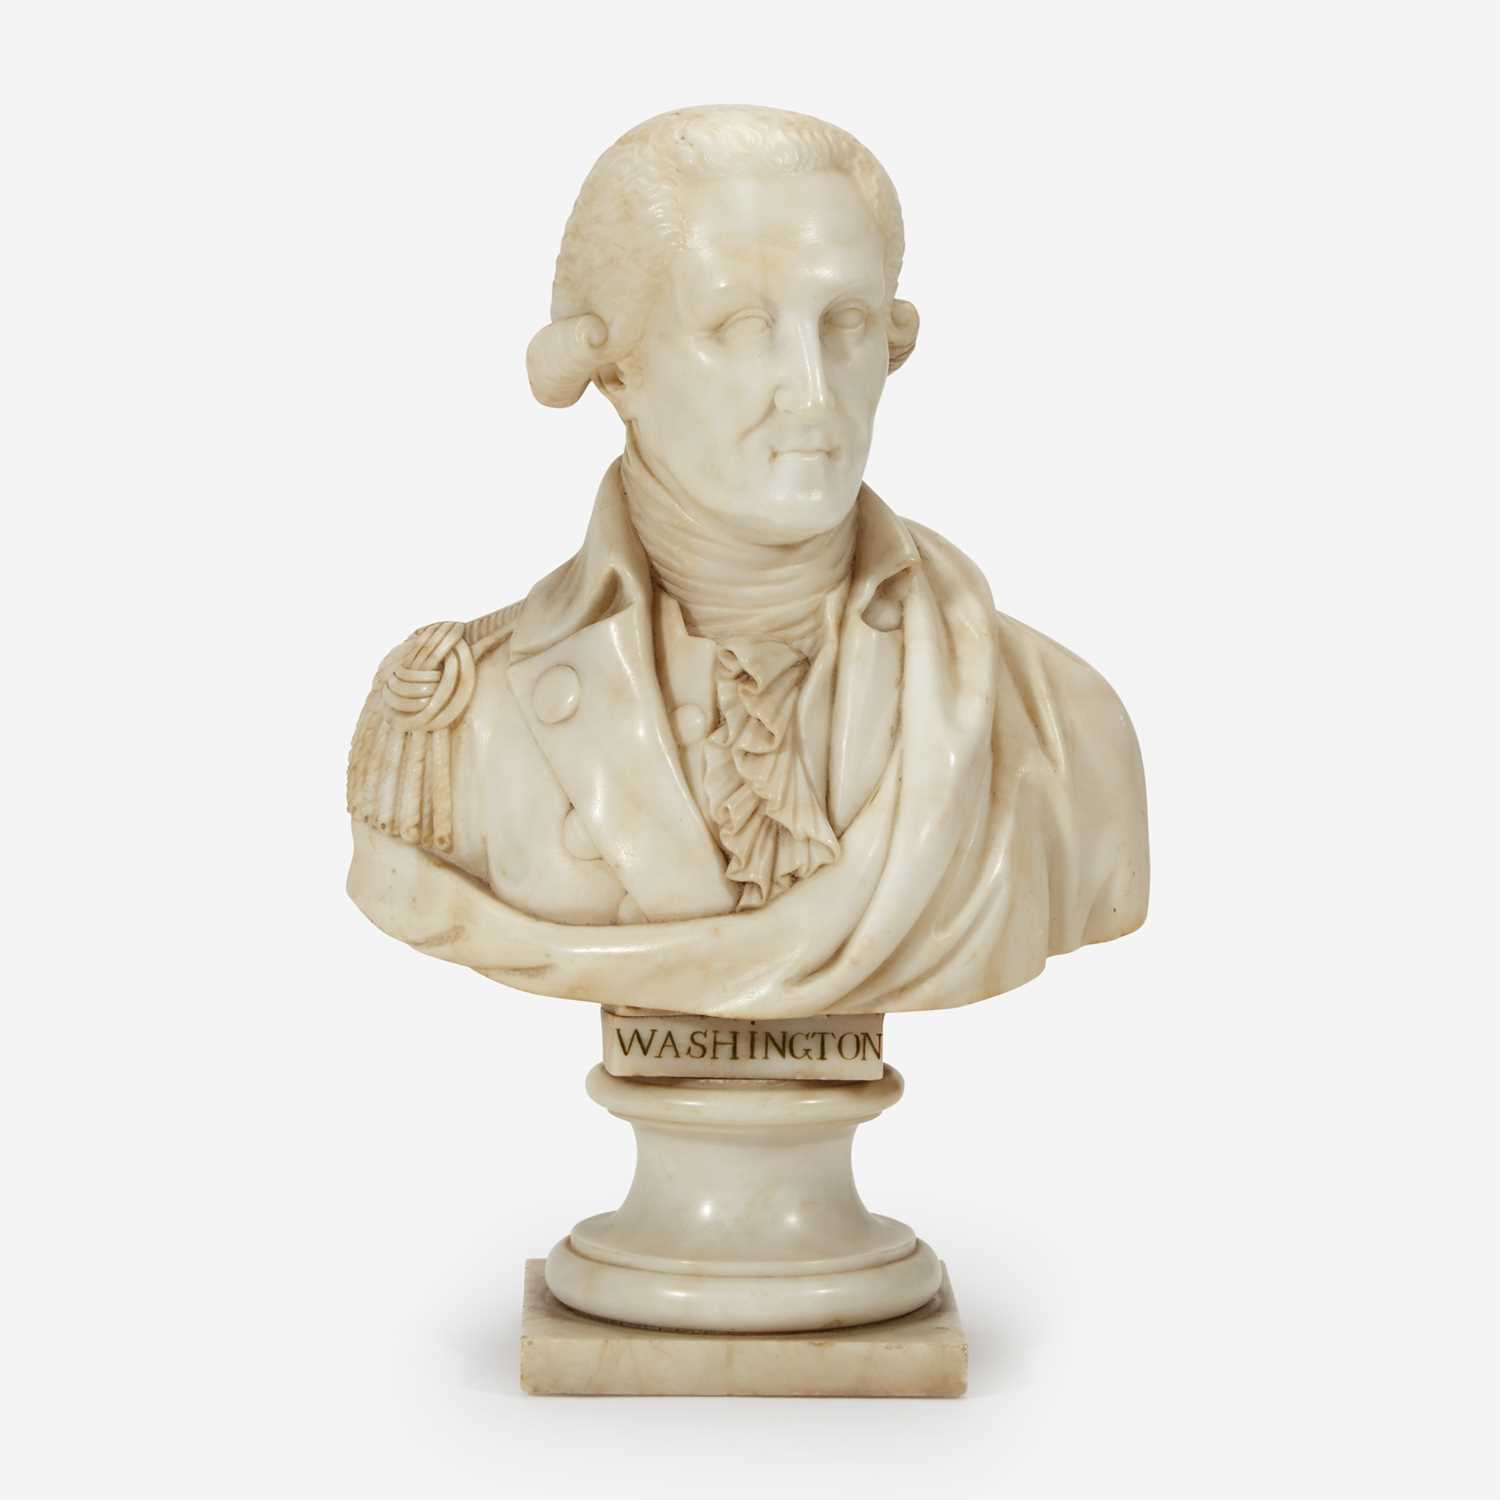 Lot 1 - A small marble bust of General George Washington (1732-1799)